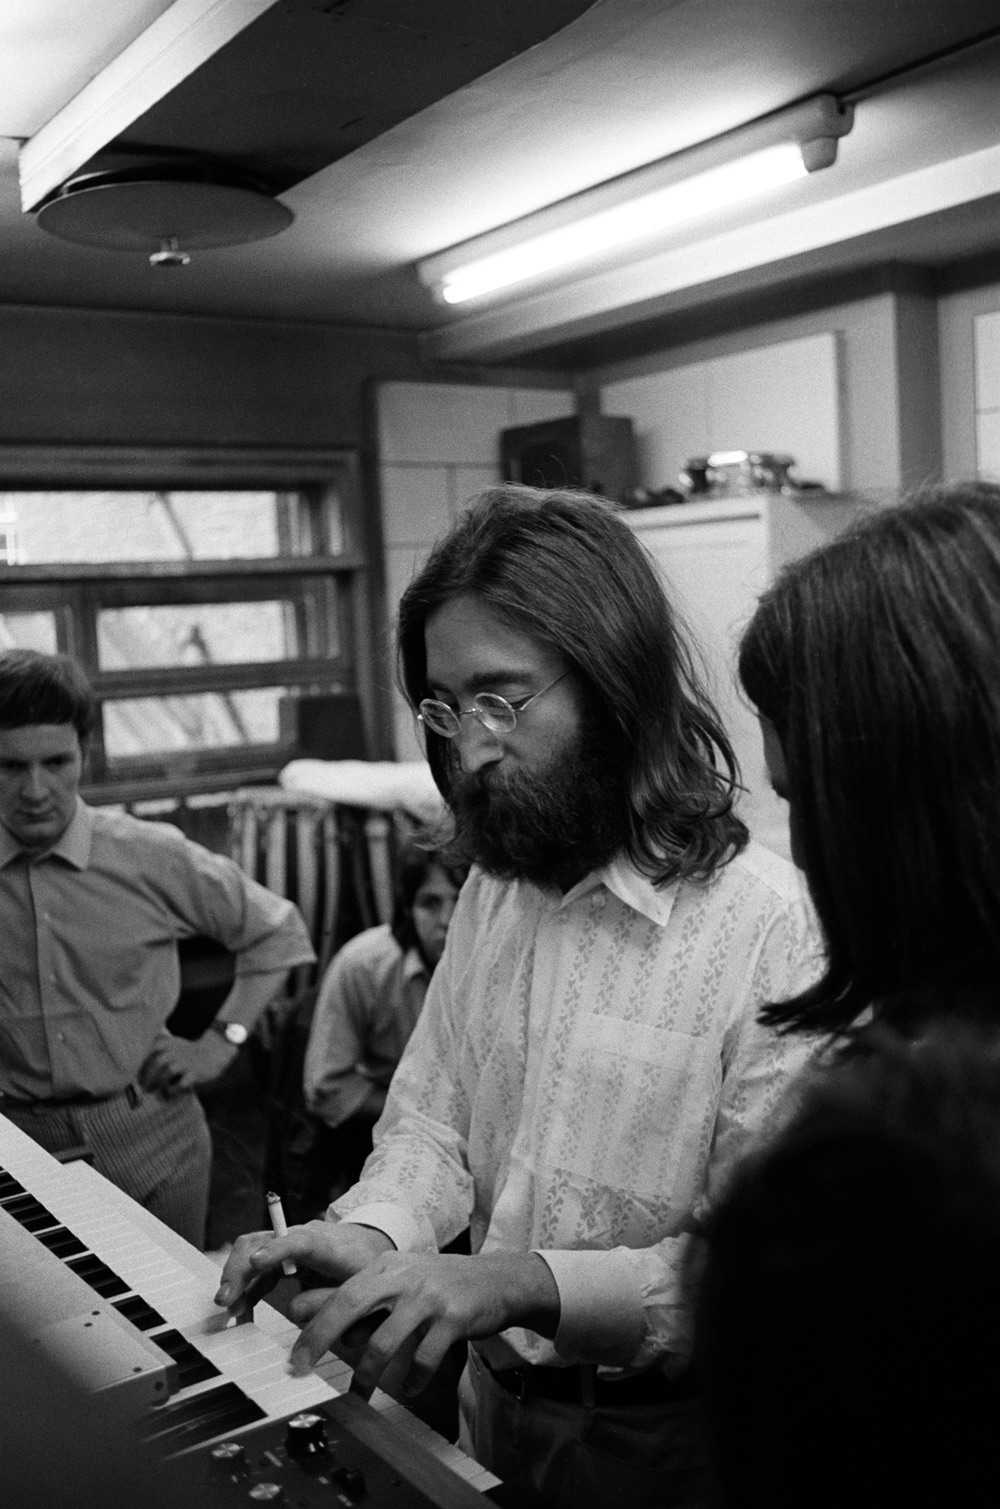 John Lennon playing a moog during an Abbey Road session, 1969.